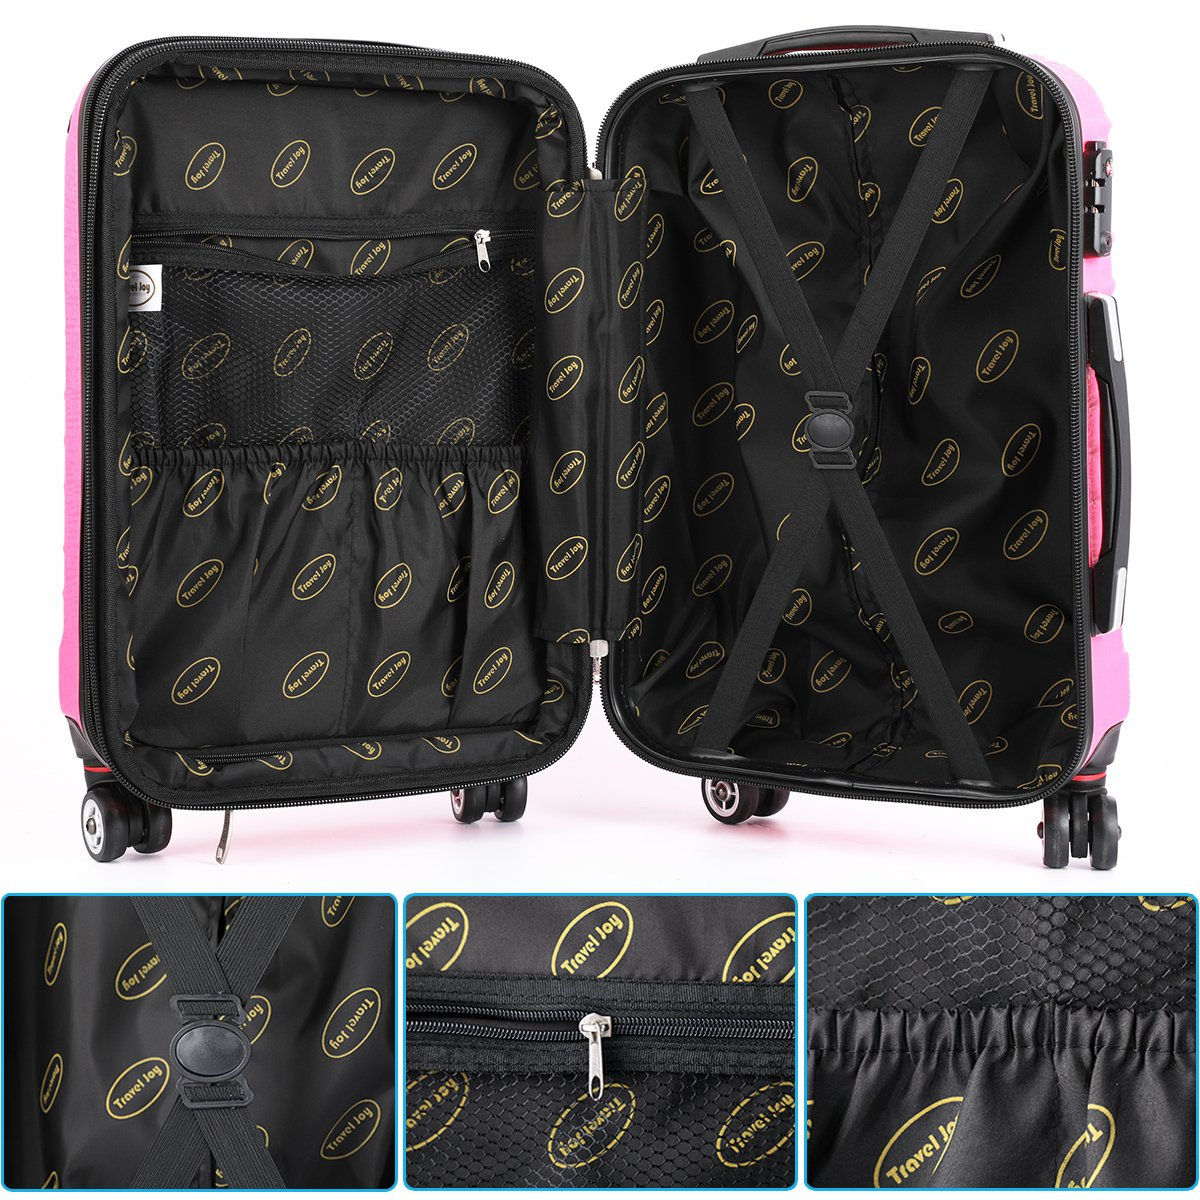 Hardside Carry On Luggage, Lightweight Expandable Spinner Carry Ons TSA Luggage Suitcase, 20 inches (HOT PINK) by Travel Joy (Image #5)